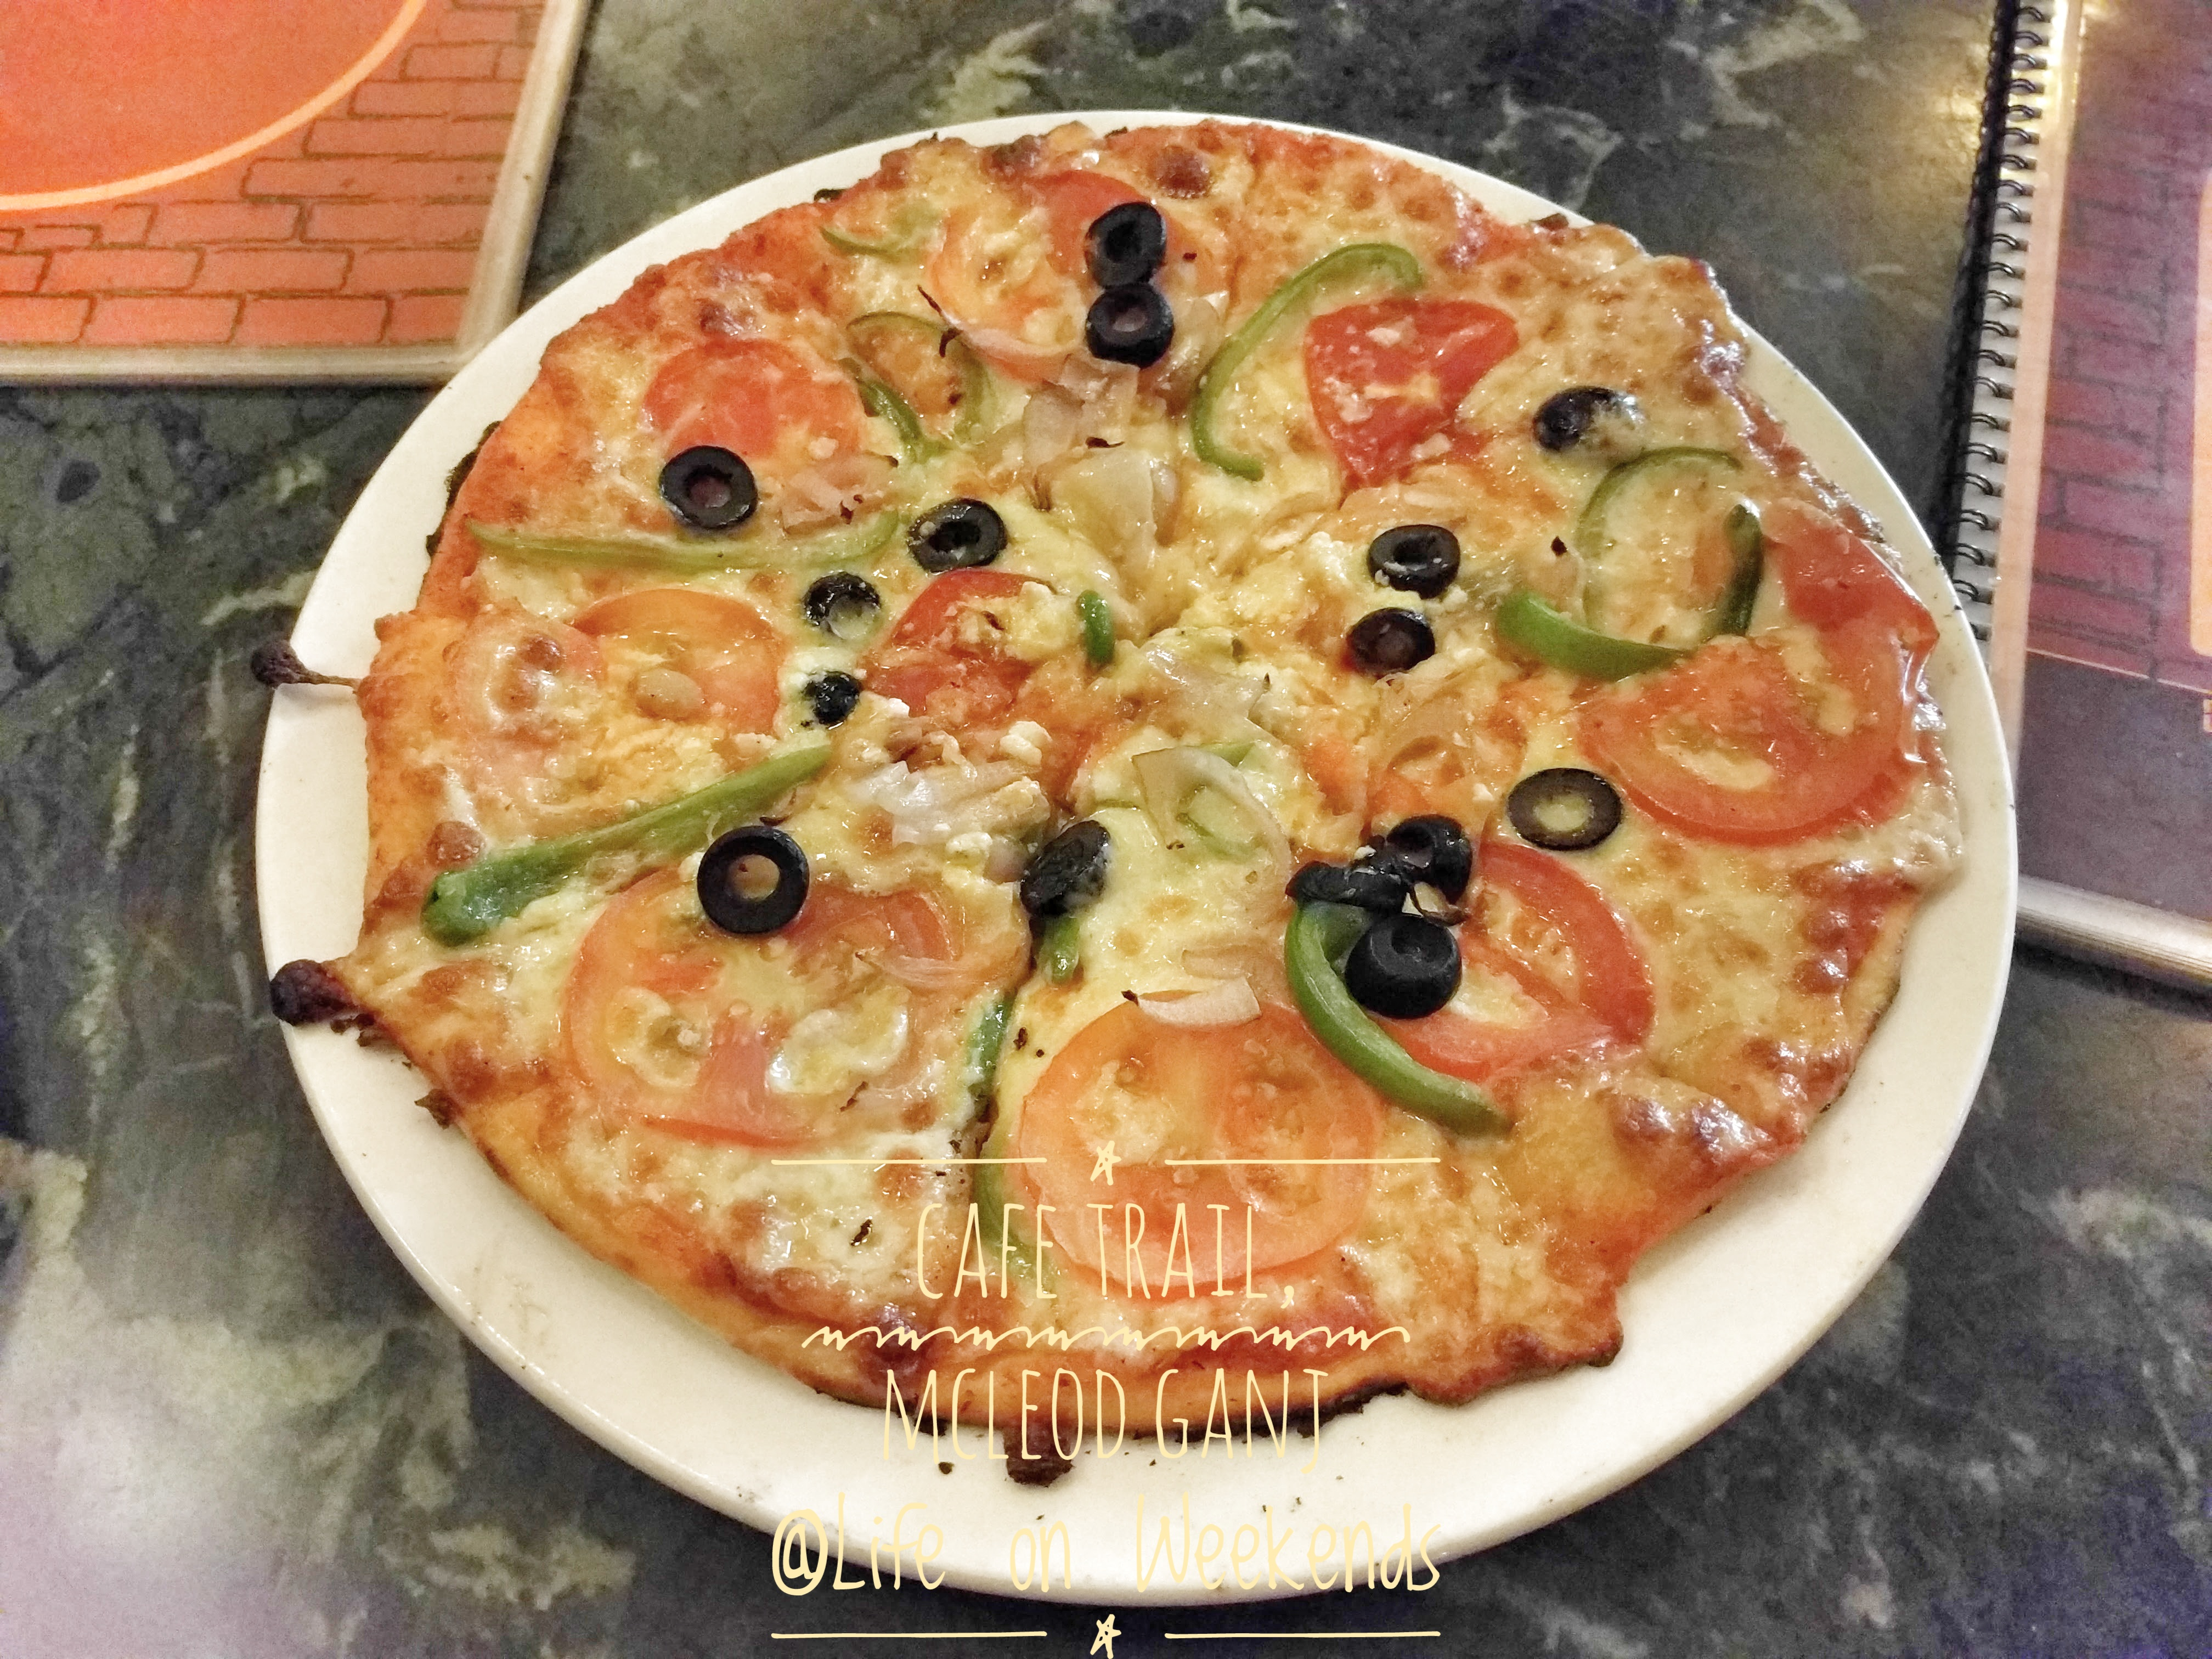 Jimmy's Italian Kitchen, McLeod Ganj @Life on Weekends